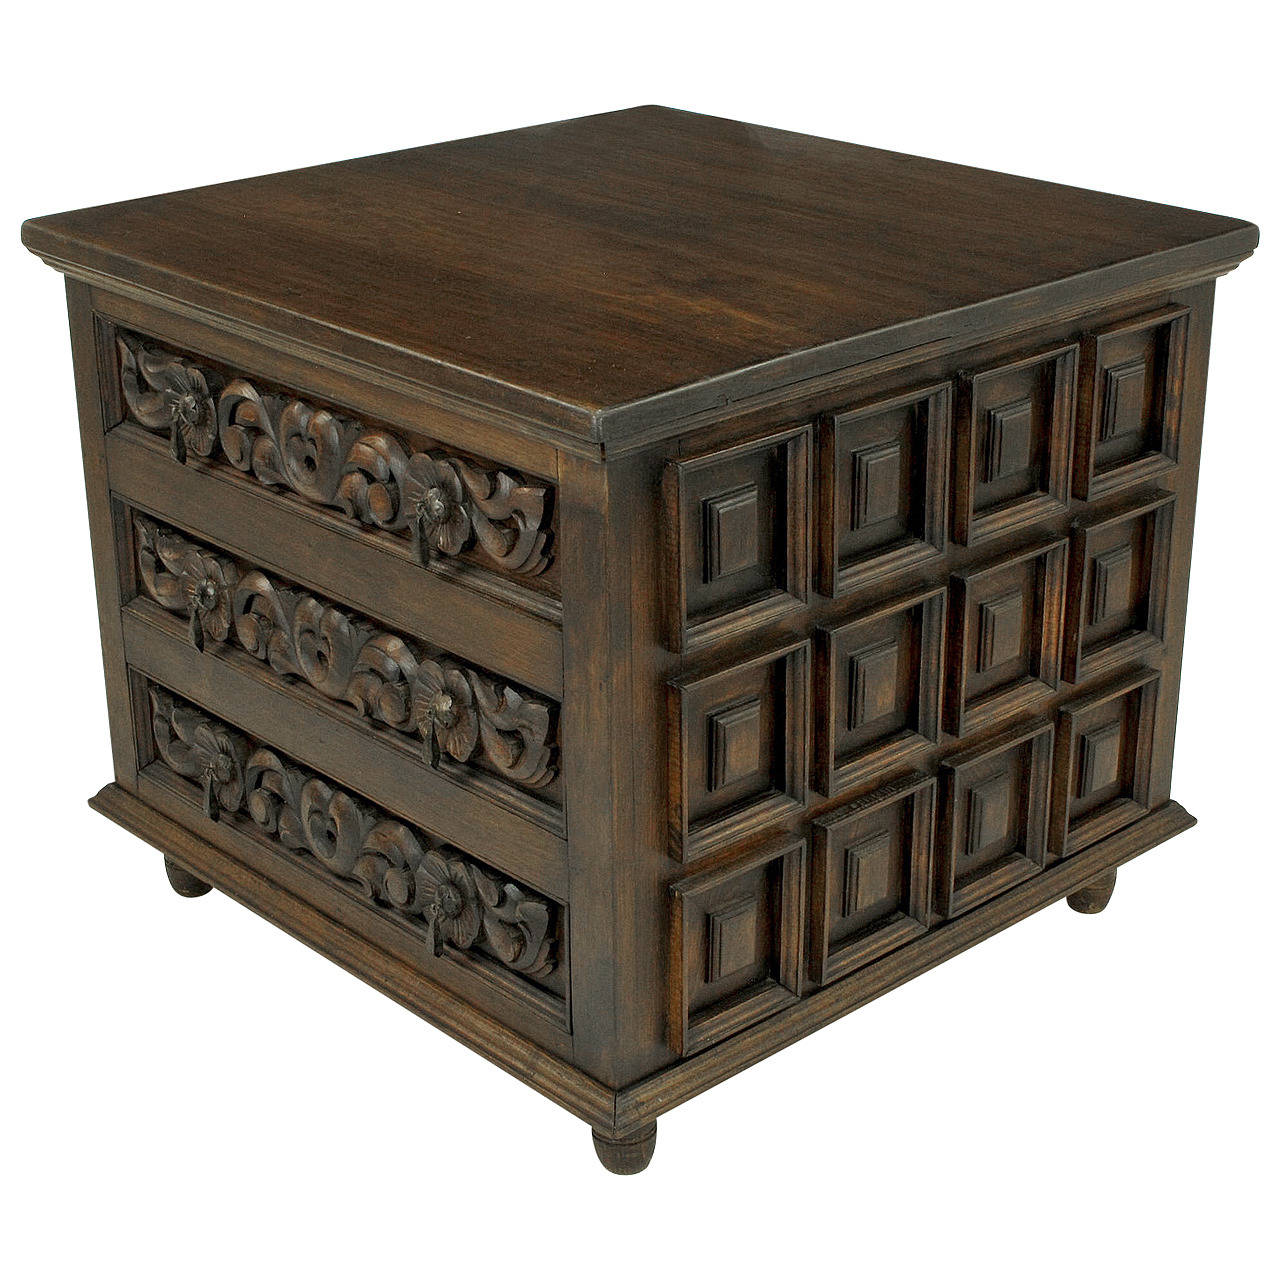 Charming Artisan Handcrafted Artes De Mexico Three Drawer Commode 1